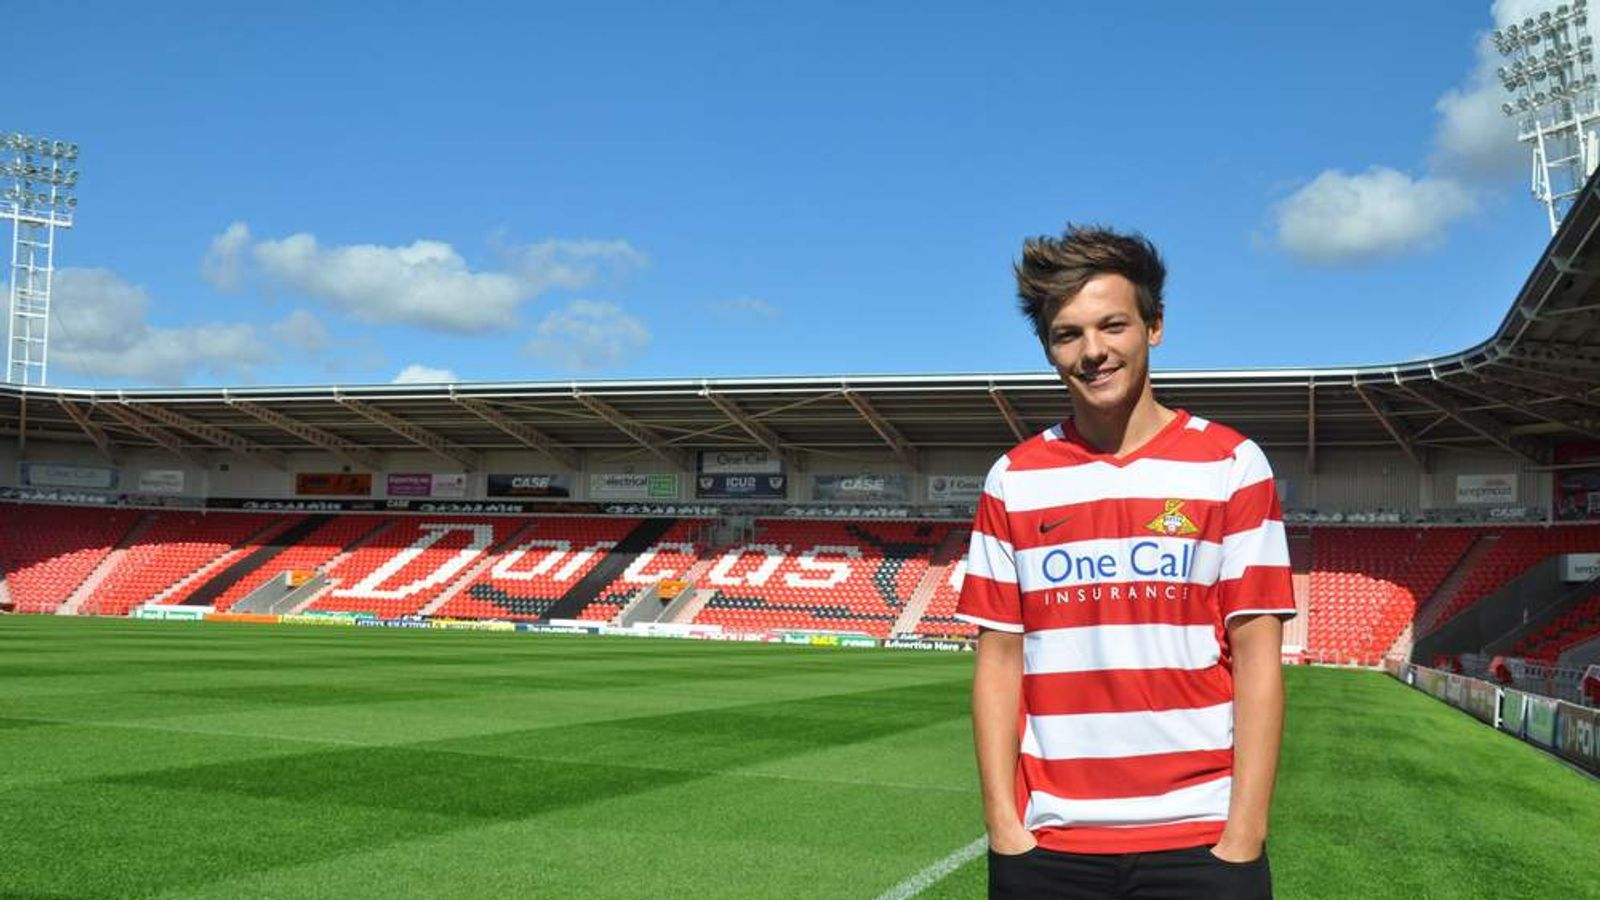 Louis Tomlinson signs for Doncaster Rovers FC